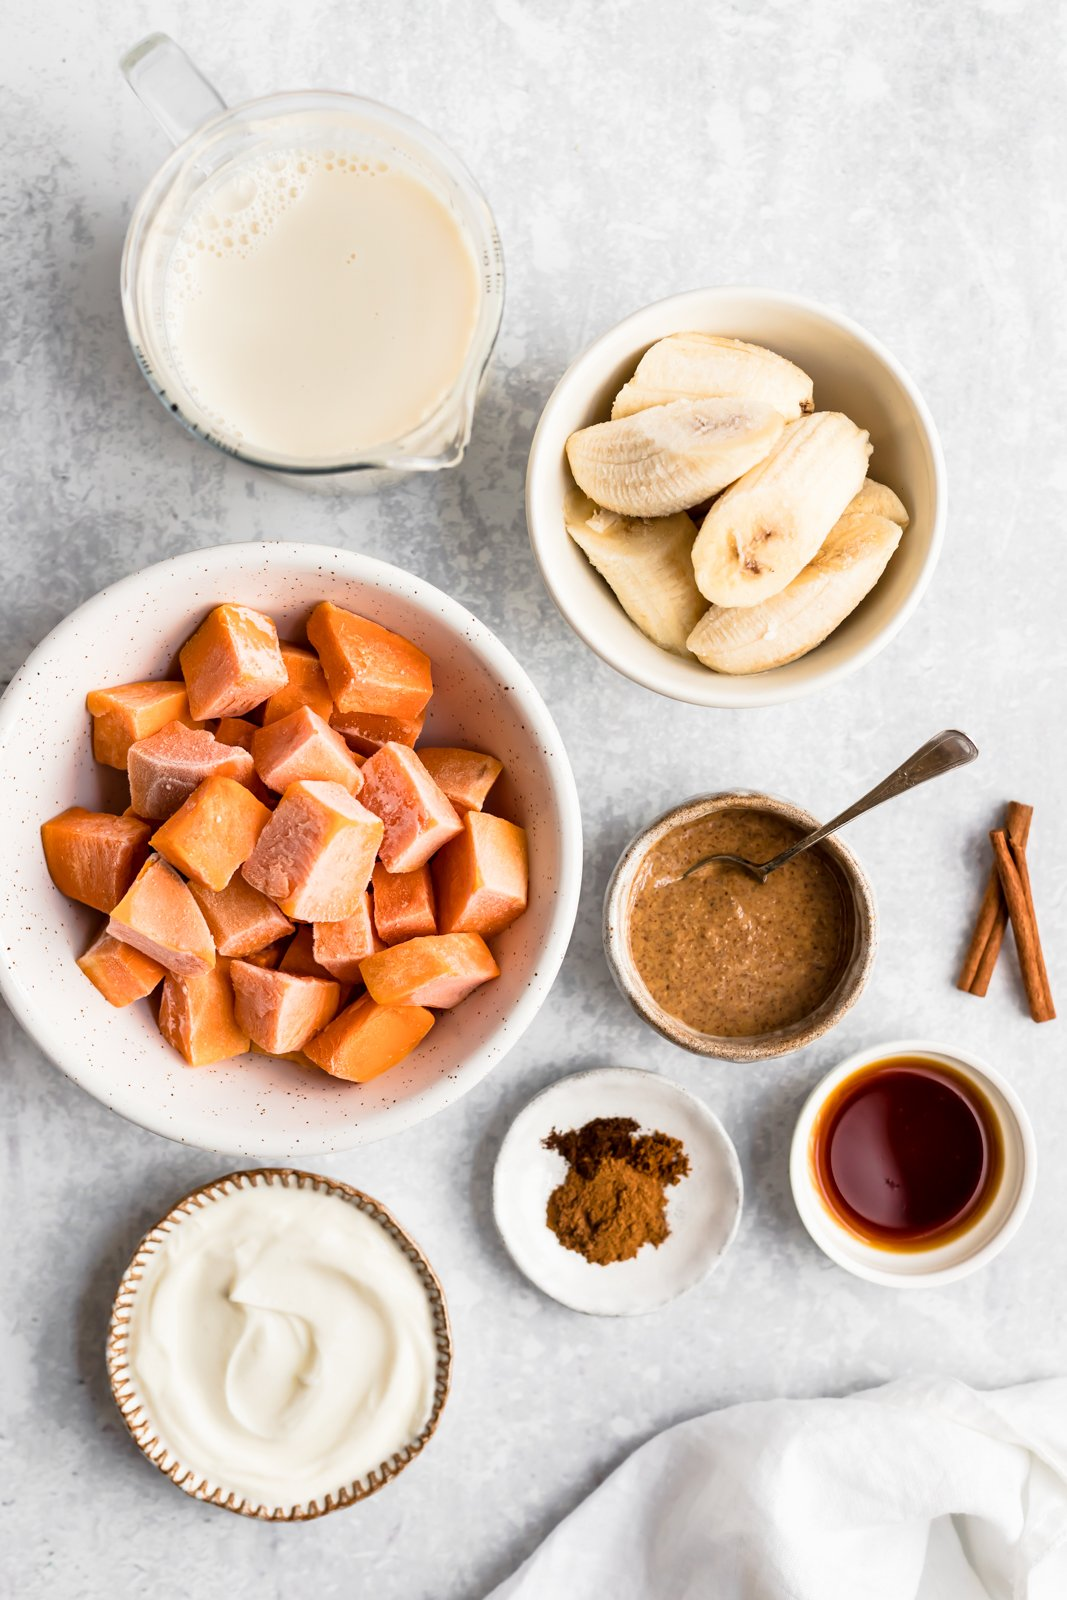 sweet potato smoothie ingredients laid out in bowls in a surface